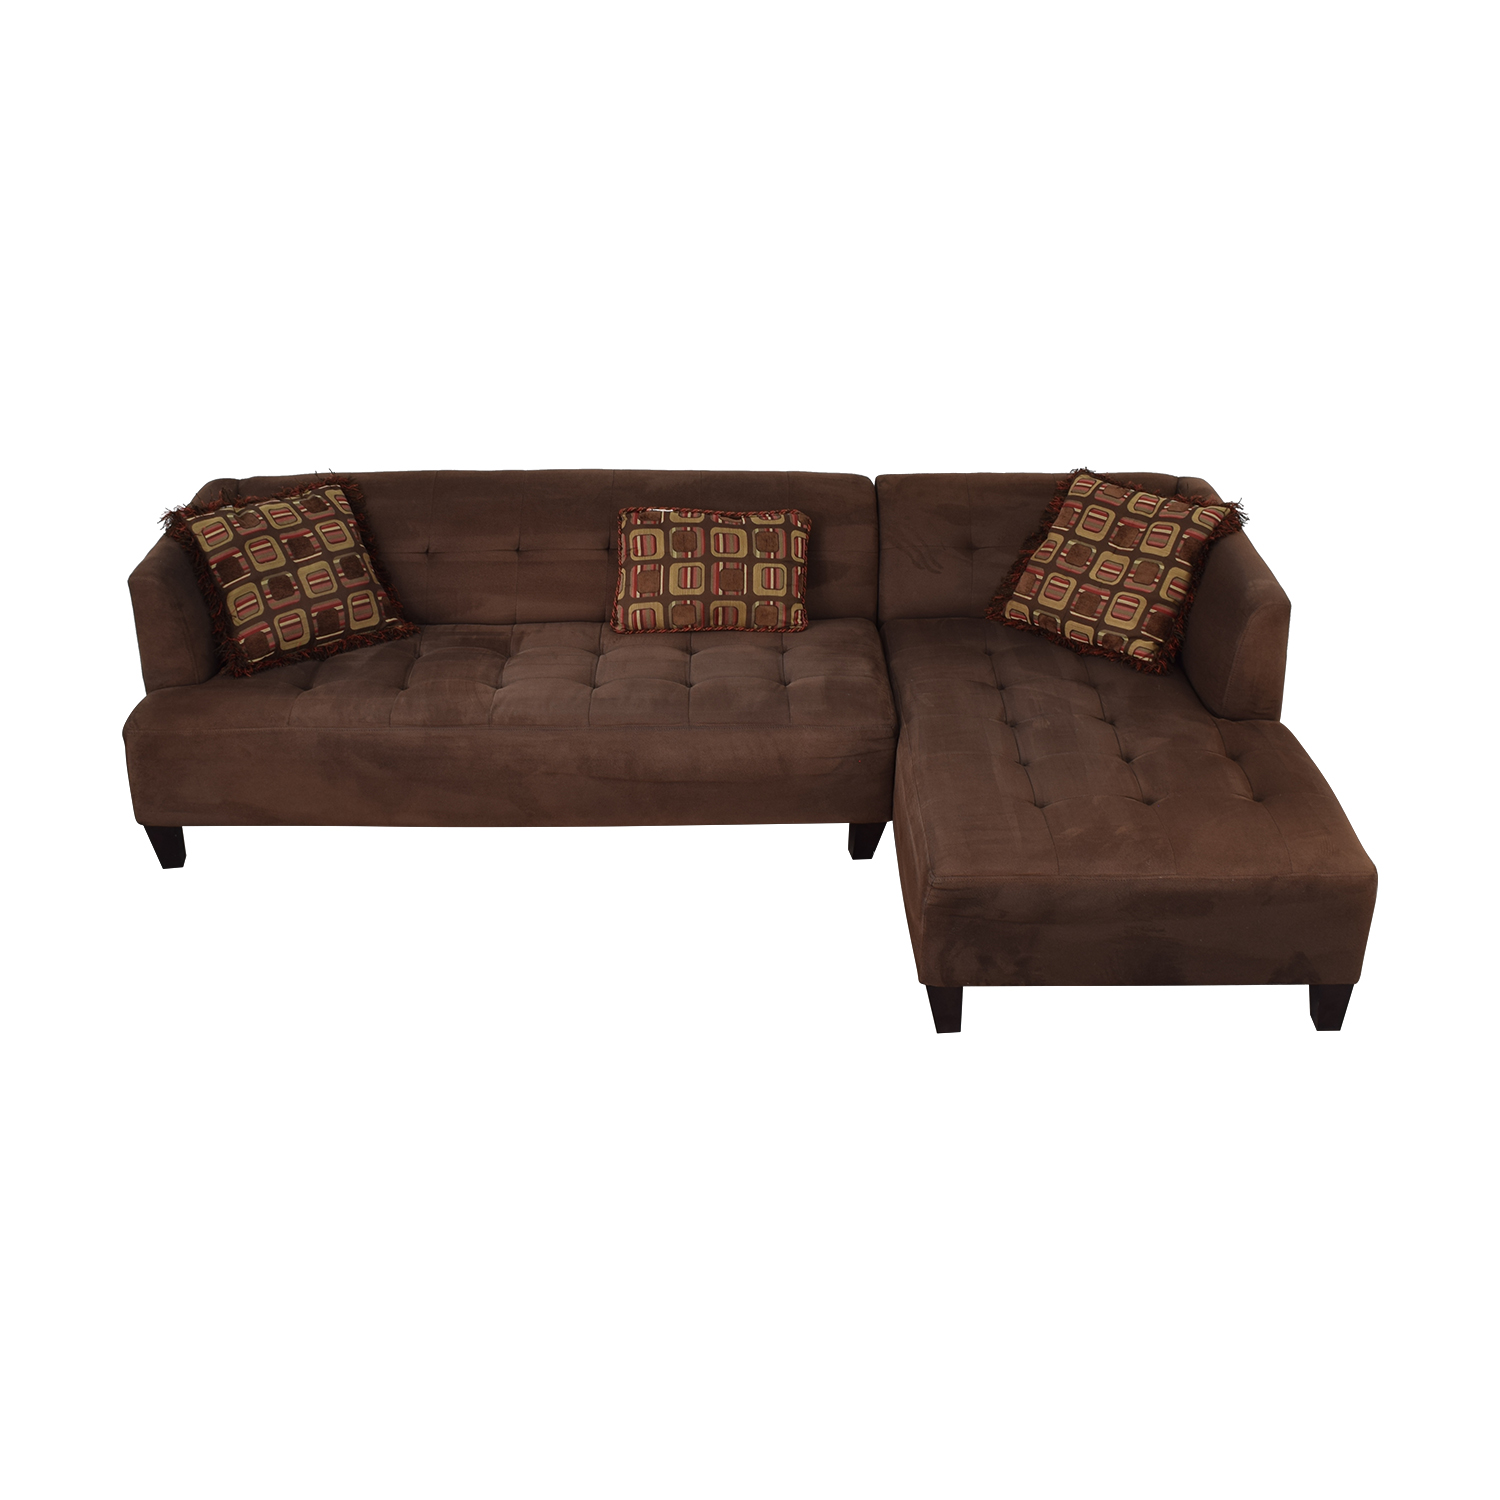 Macy's Macy's Brown Tufted Chaise  Sectional